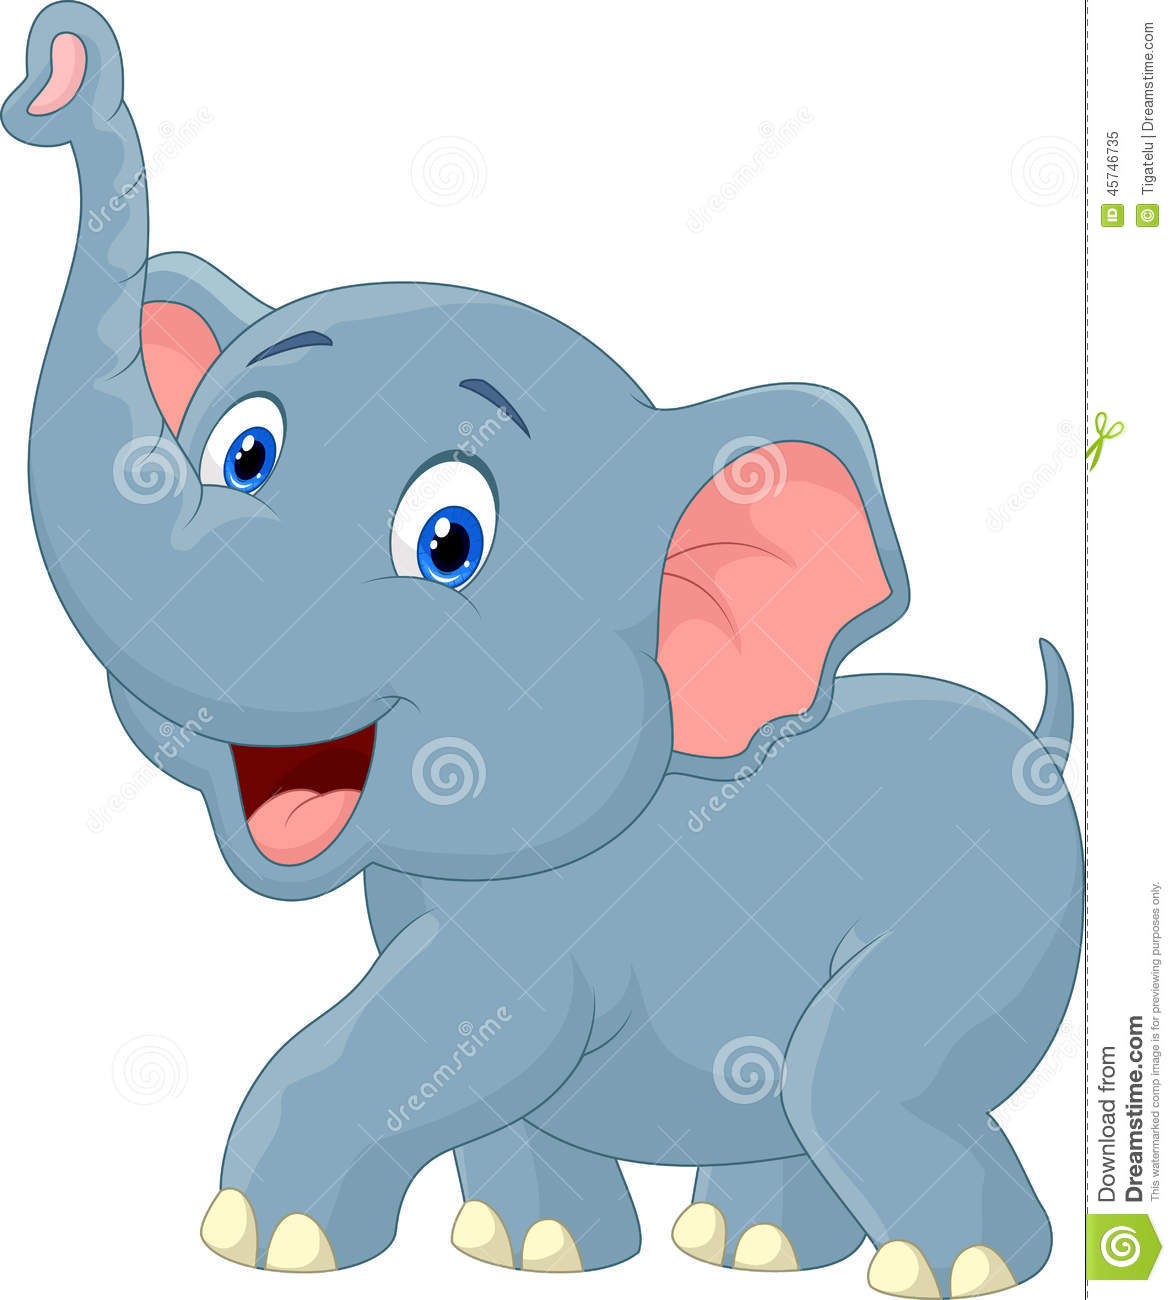 Eric un animal de toon illustration de vecteur - Elephant en dessin ...